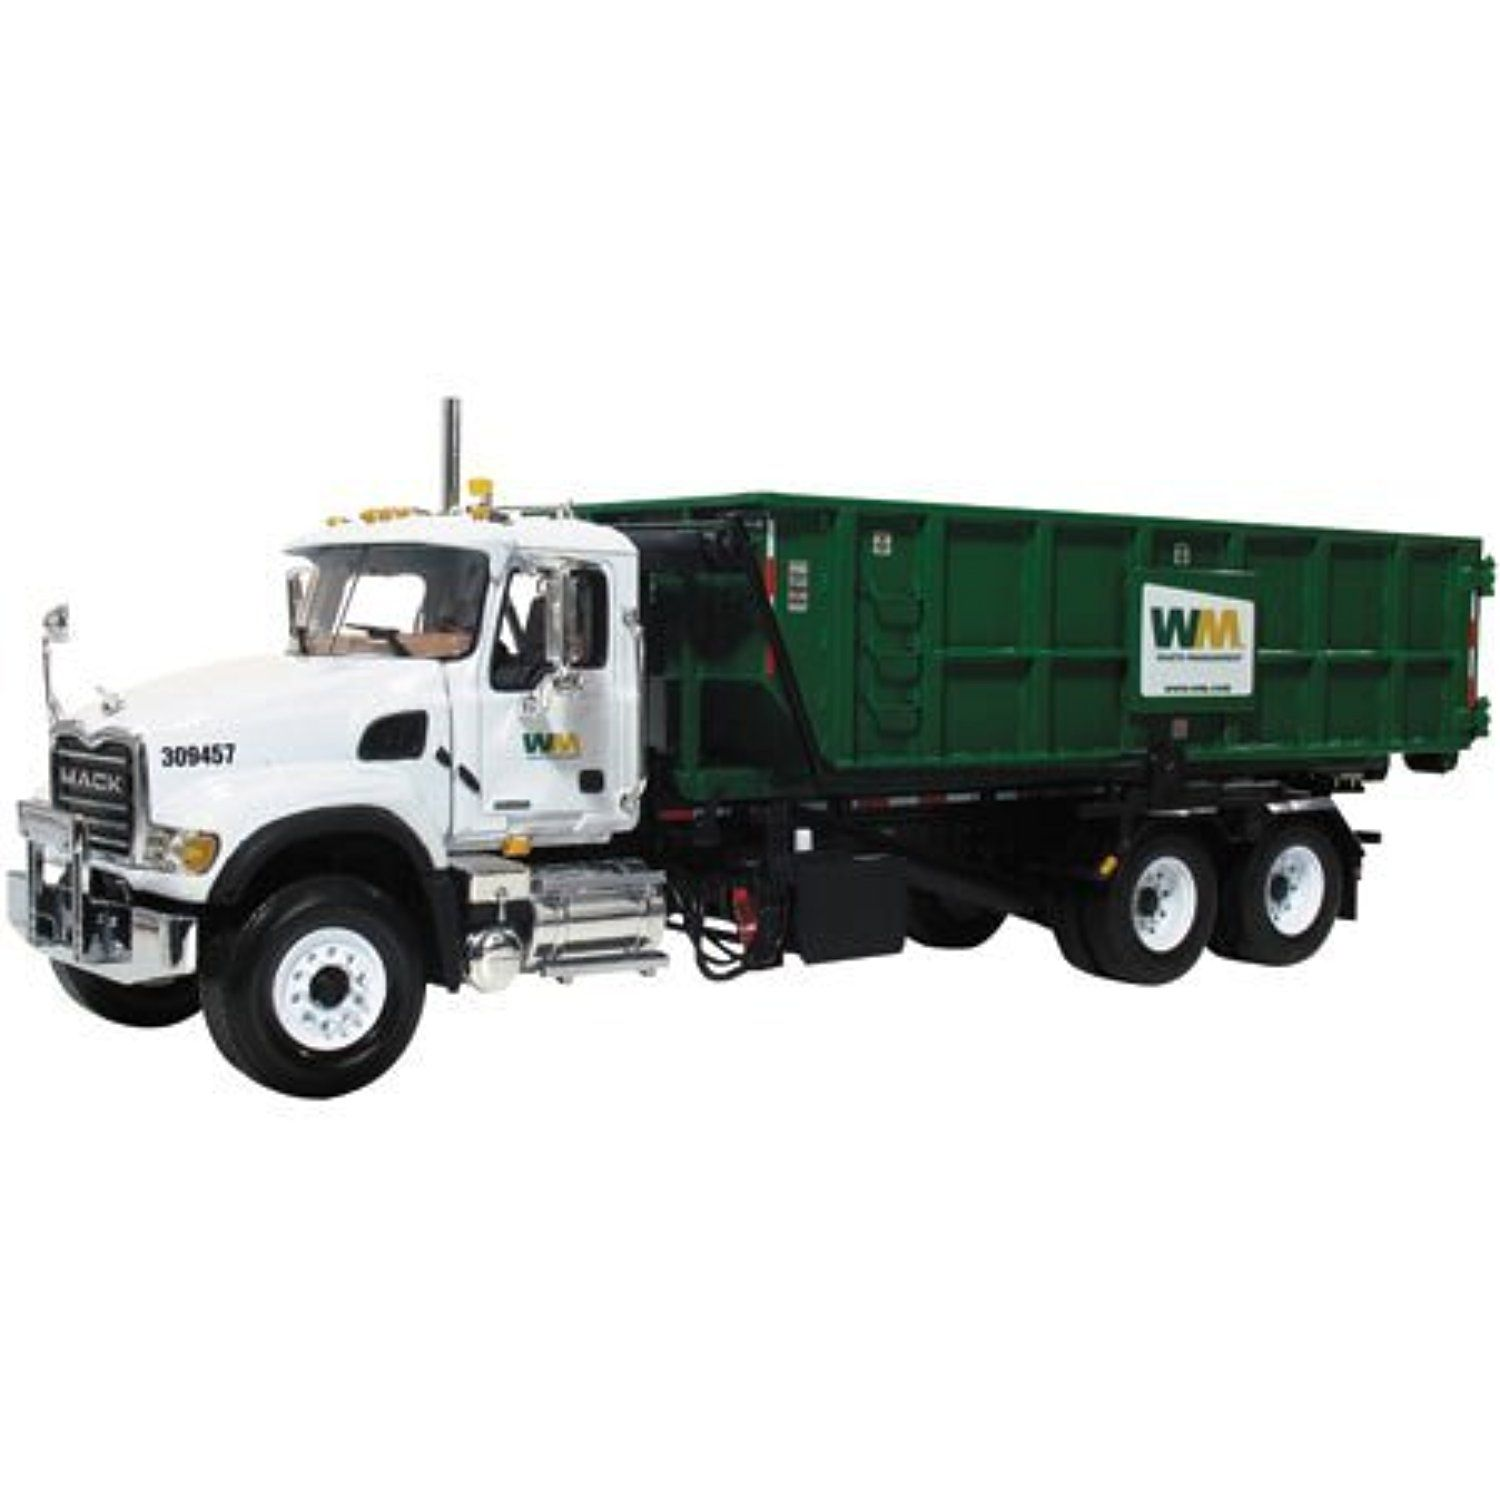 Mack Wm Granite Roll Off Refuse Garbage Truck 1 34 19 3441a By Waste Management Awesome Products Selected By Anna Churchill Trucks Garbage Truck Garbage